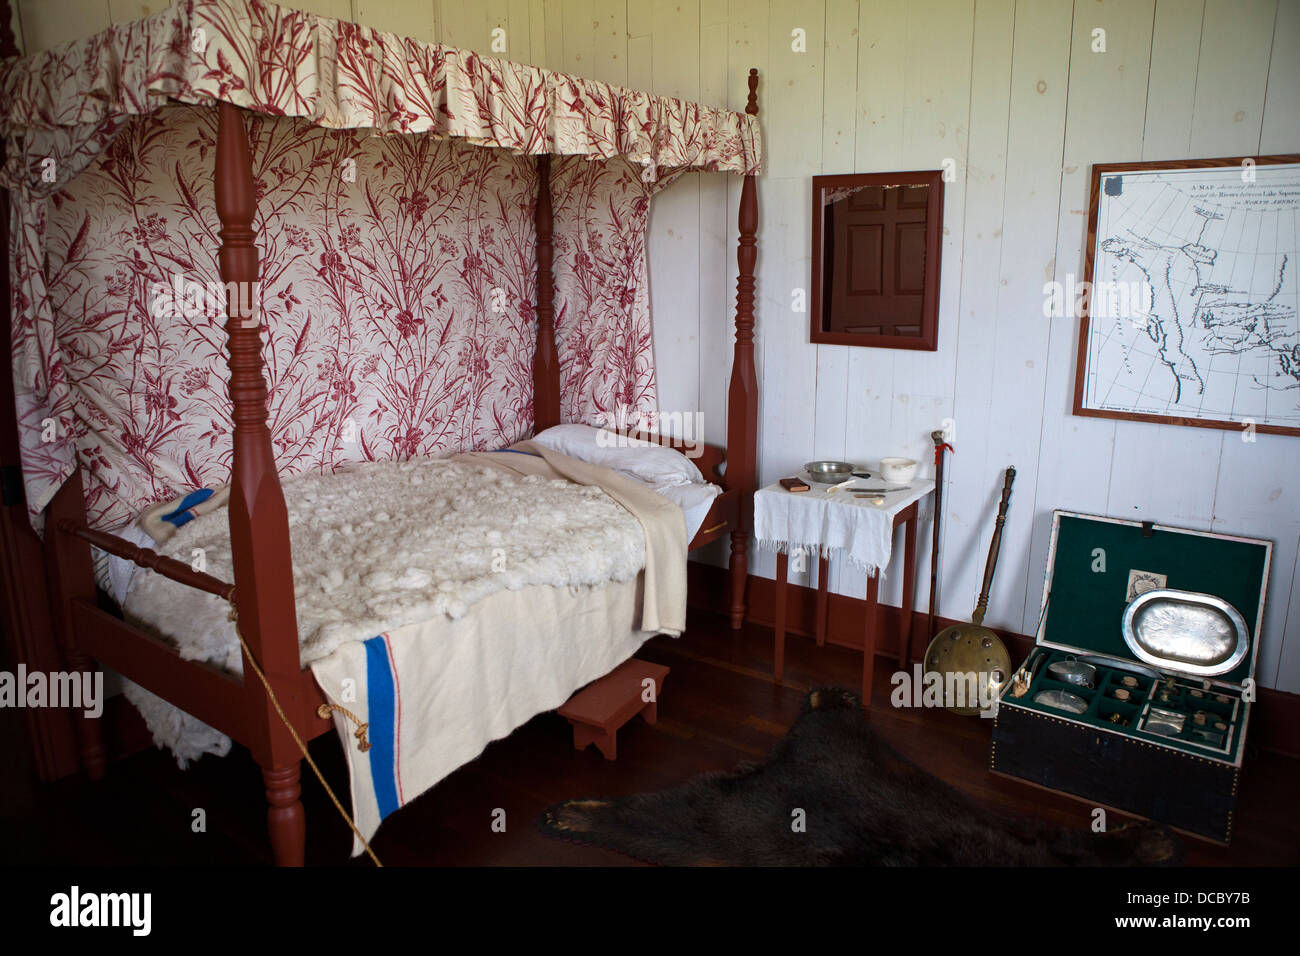 Bedroom inside of the Great Hall, Grand Portage National Monument, Grand Portage, Minnesota, United States of America - Stock Image